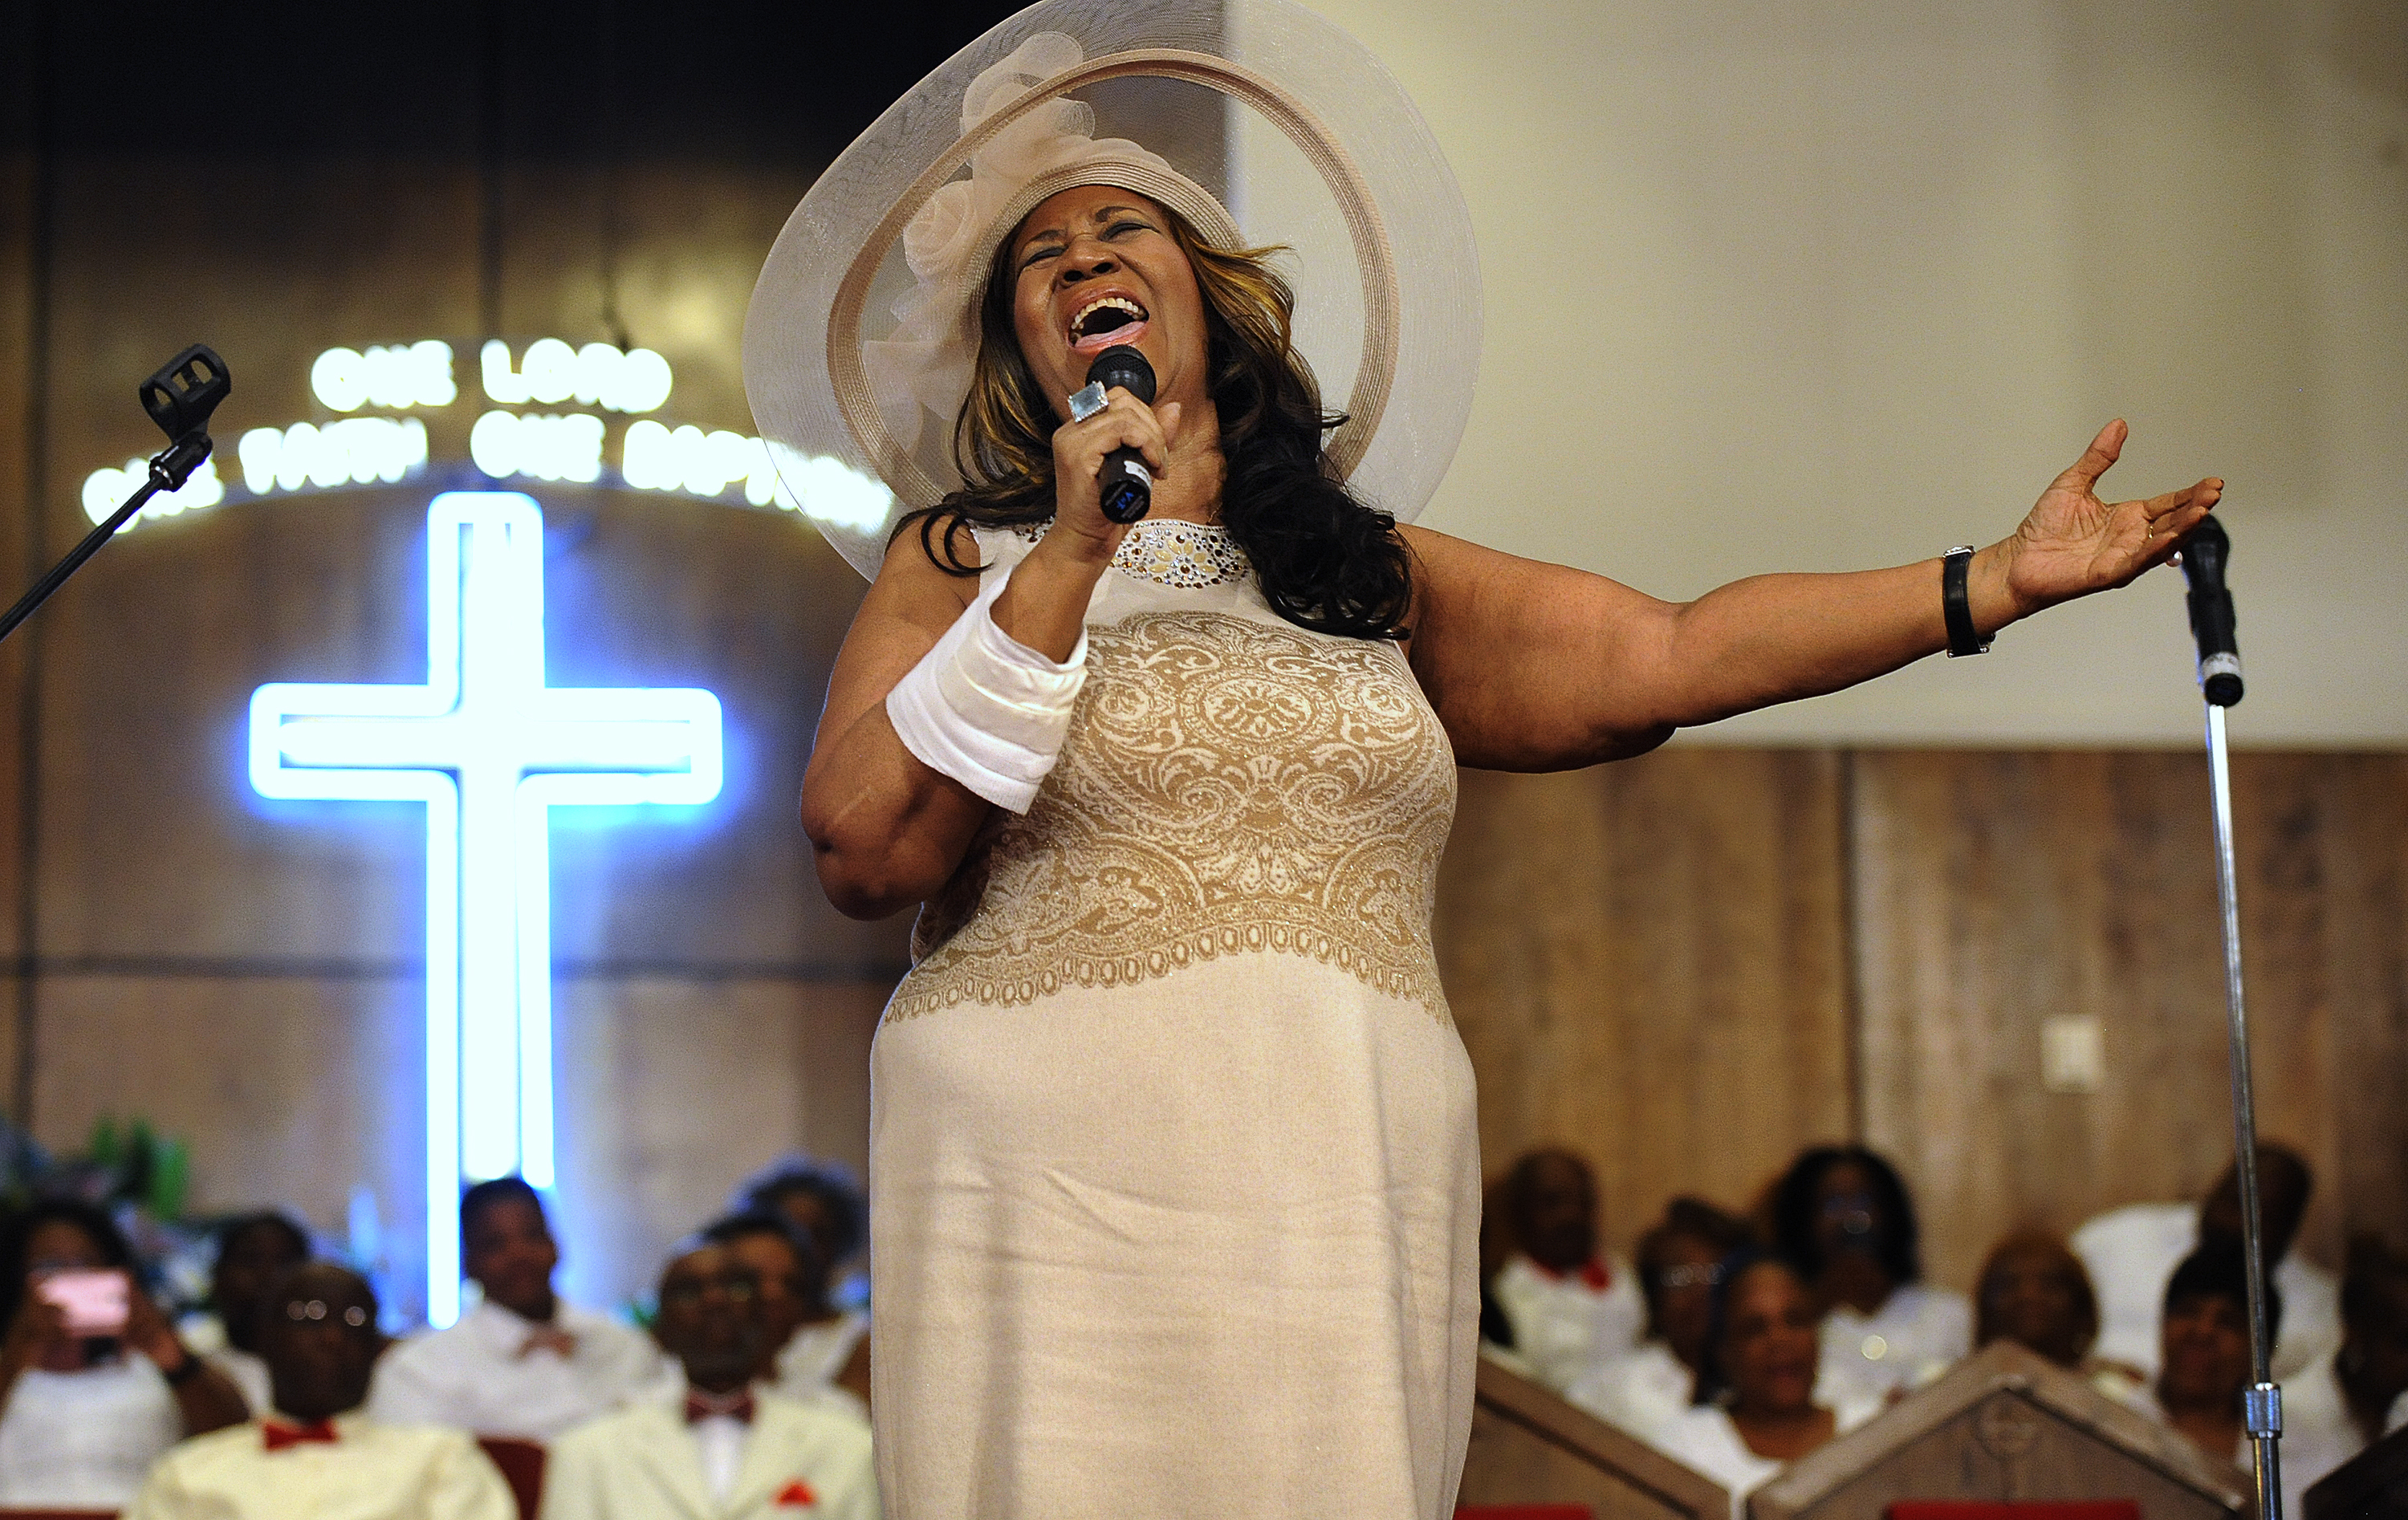 FILE - In this June 7, 2015 file photo, Aretha Franklin sings during a memorial service for her father and brother, Rev. C.L. and Rev. Cecil Franklin, at New Bethel Baptist Church where they were ministers, in Detroit, Mich. Franklin died Thursday, Aug. 16, 2018 at her home in Detroit.  She was 76. (Elizabeth Conley/The Detroit News via AP, File)